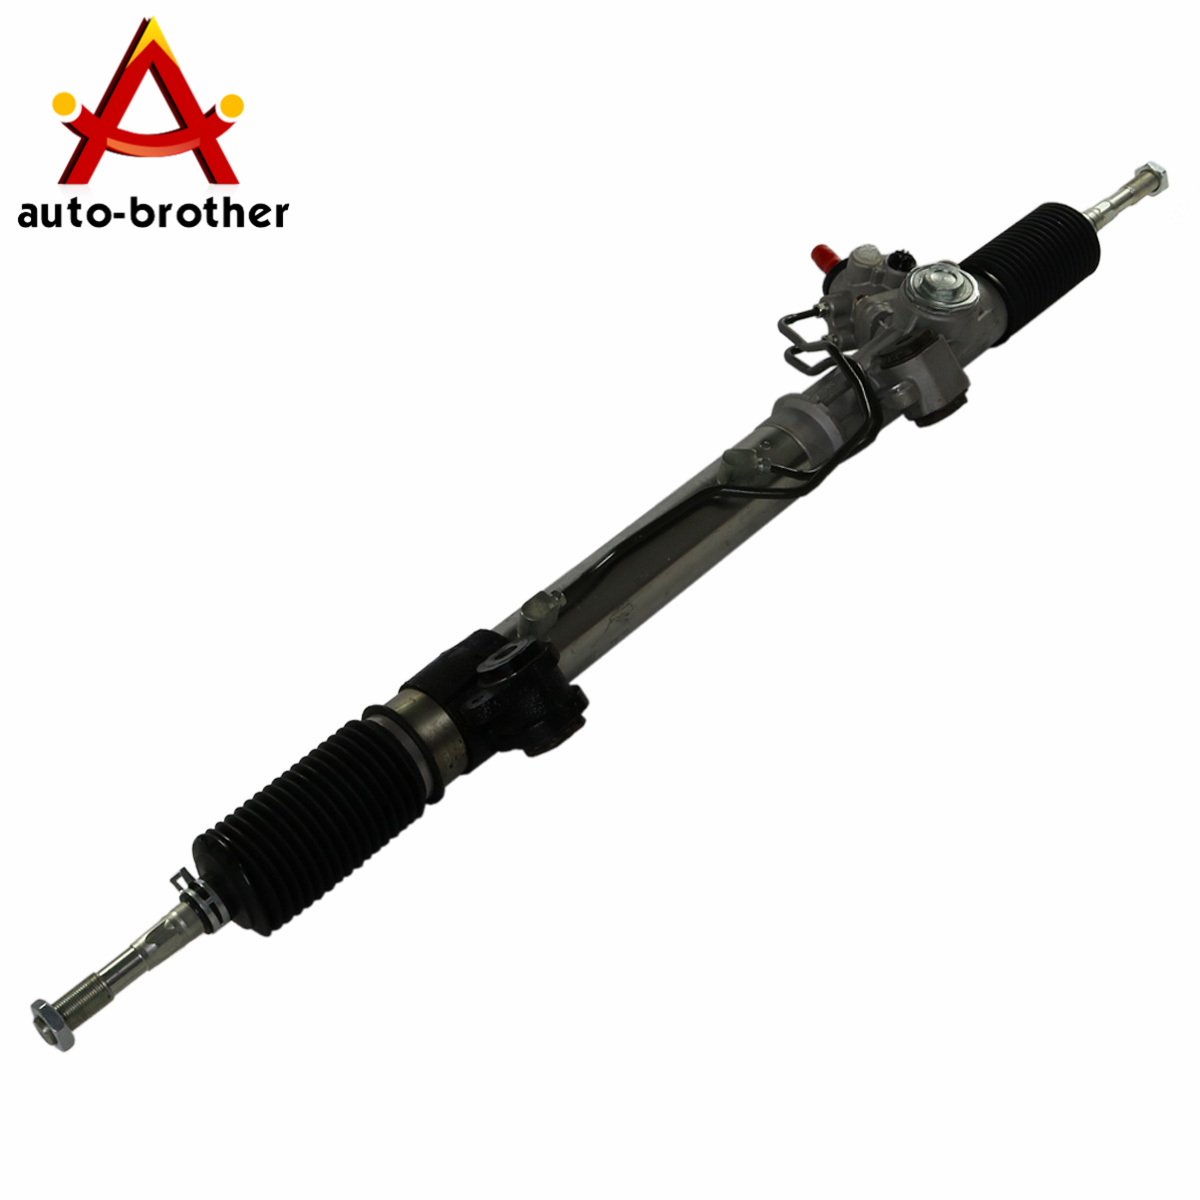 Direct Fit Steering Rack for 2003-2007 Lexus LX470 Toyota Land Cruiser